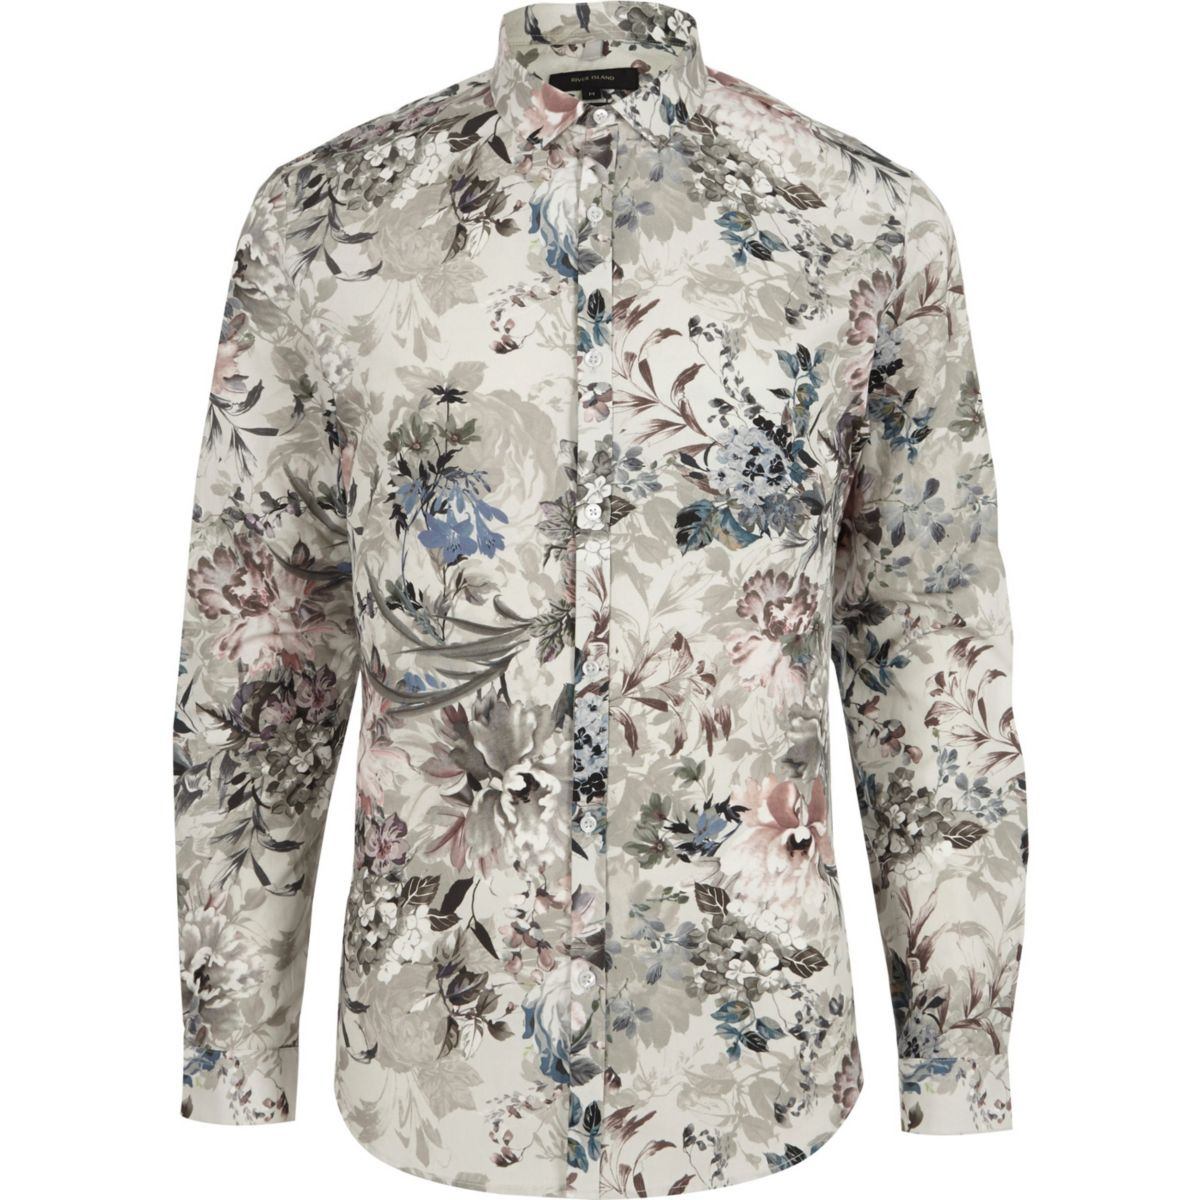 Green Floral Print Slim Fit Shirt Ri Limited Edition